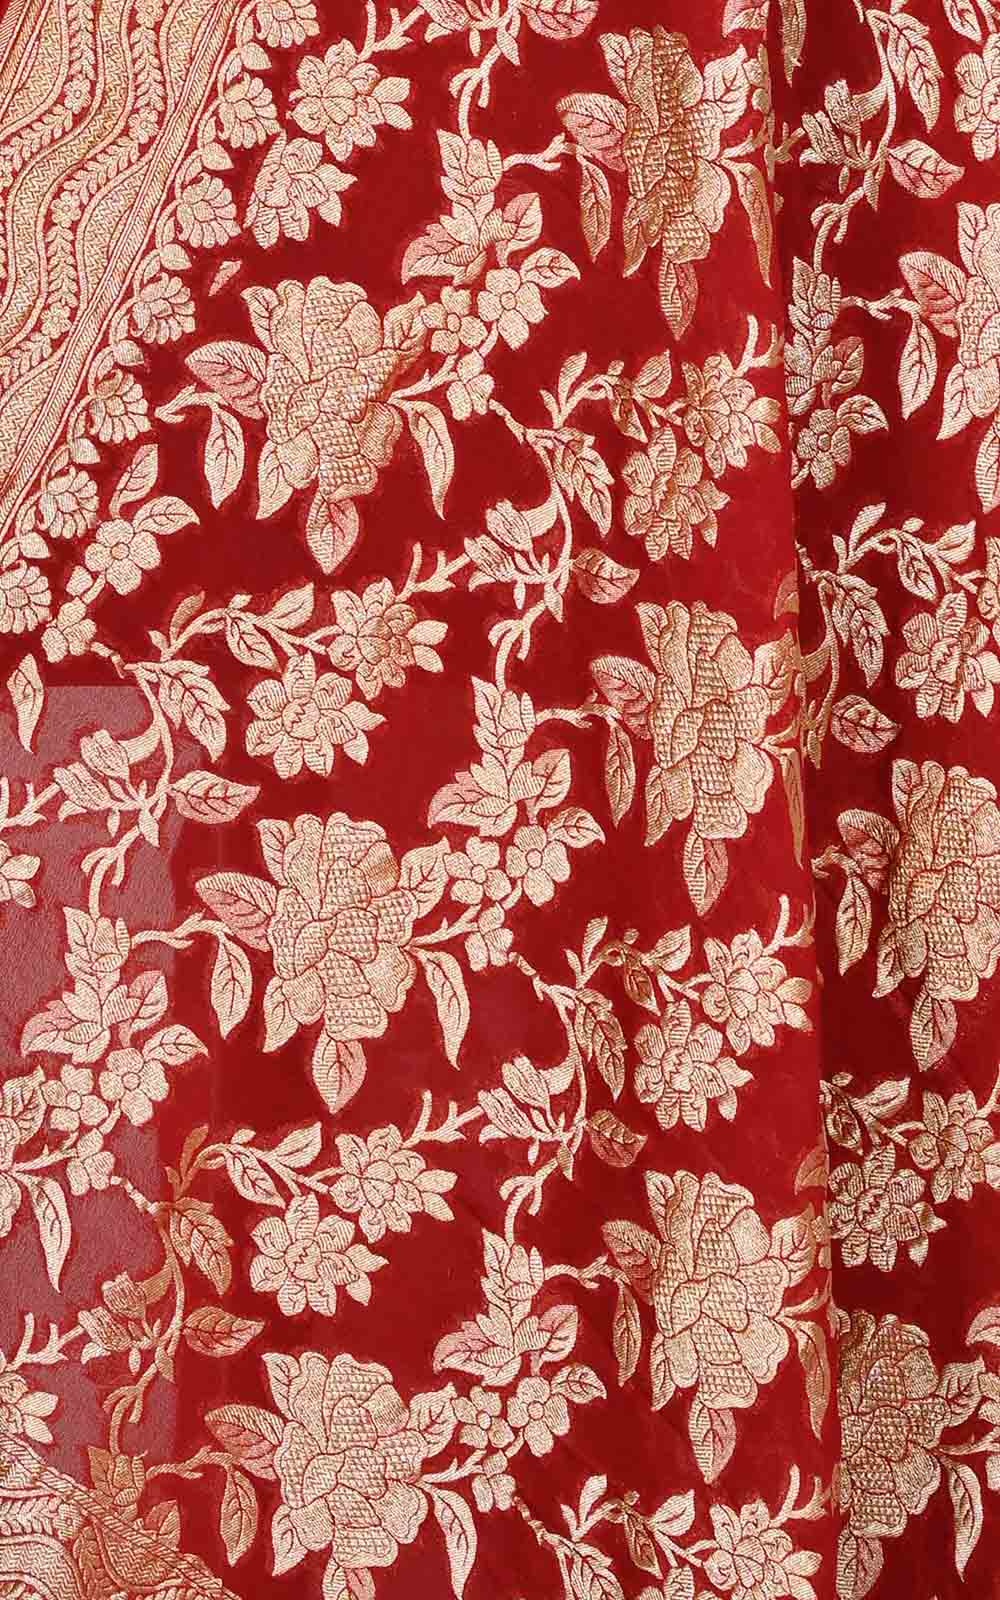 Red khaddi georgette Banarasi dupatta with floral jaal (2) Close up